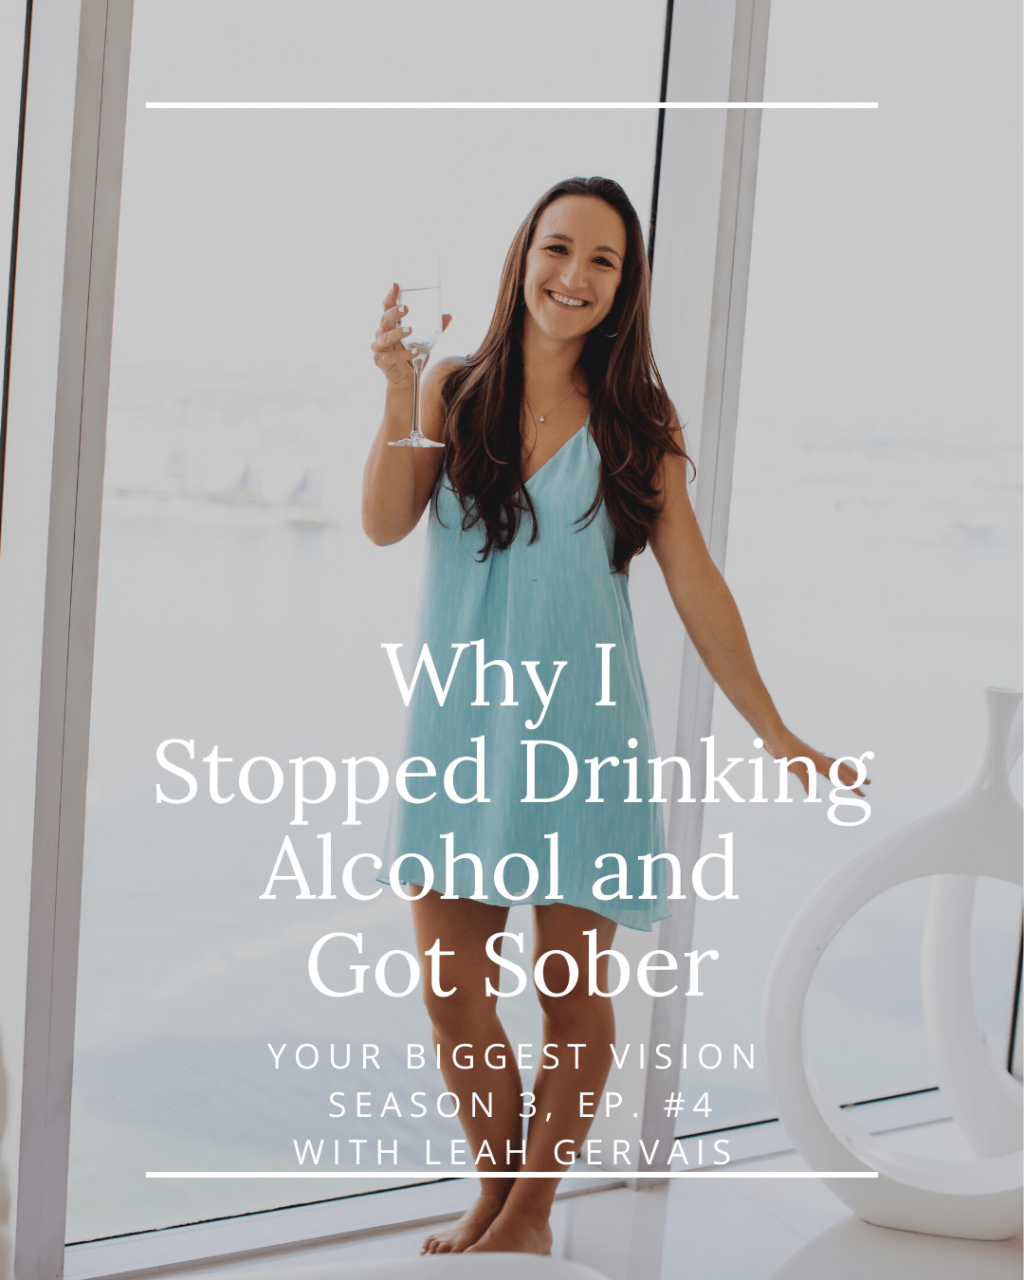 In this personal episode, I share the story behind my recent decision to stop drinking alcohol and my experience with Spontaneous Sobriety.